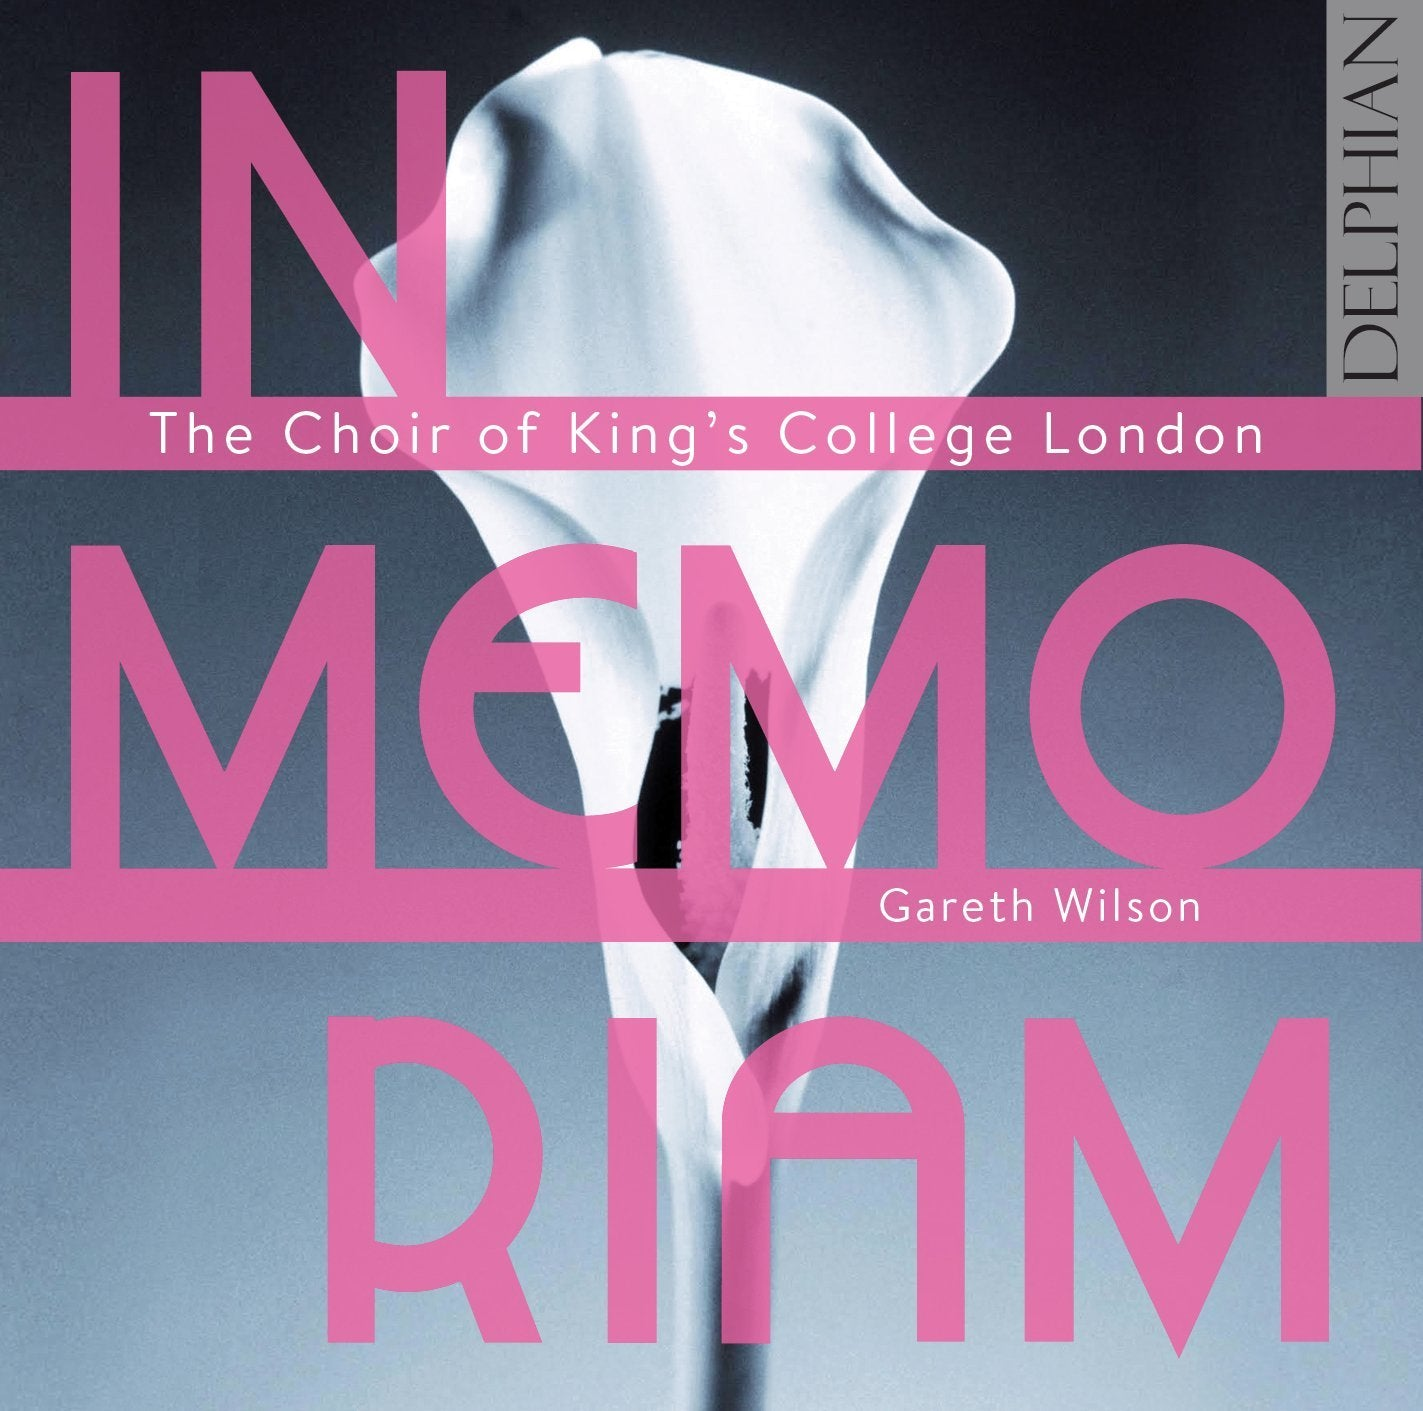 In Memoriam - A tribute to David Trendell CD Delphian Records